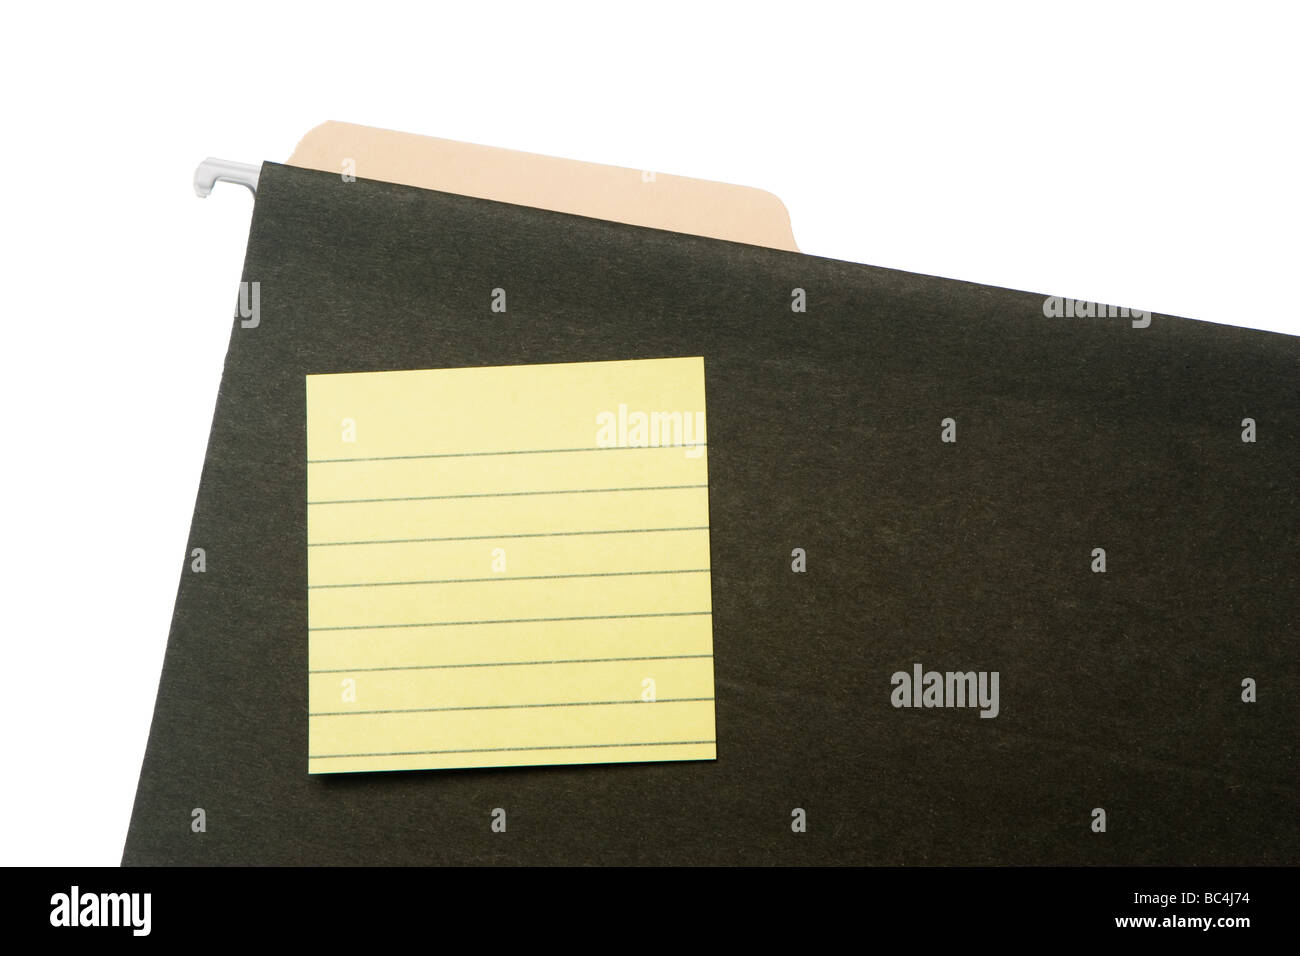 Blank lined post it note on green hanging file folder. Tab of manila folder inside hanging folder. Isolated on white. - Stock Image